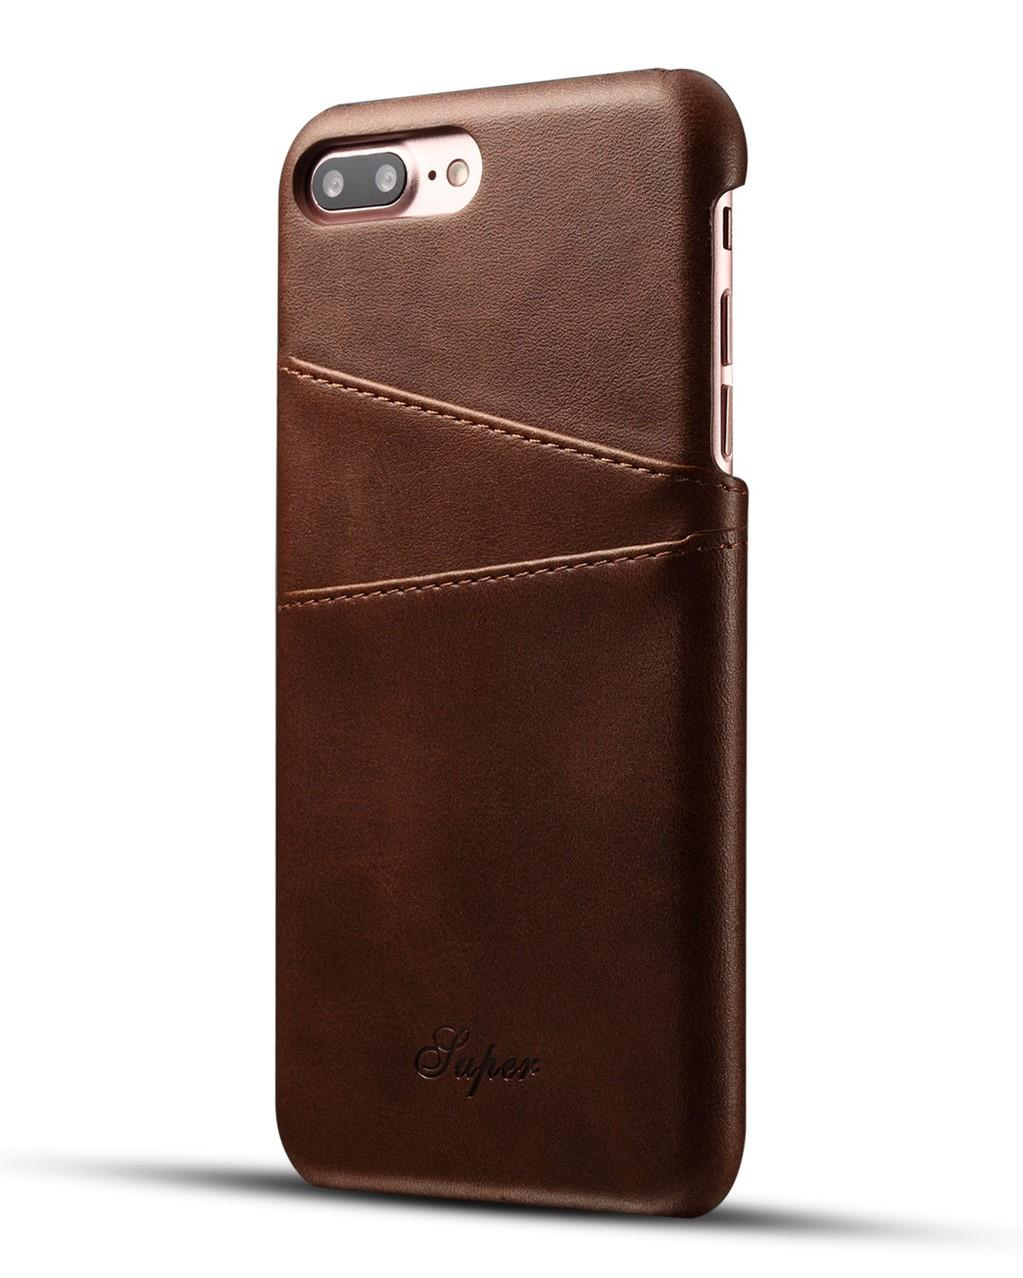 Luxury High Quality PU Leather Slim iPhone Armor Case /Cover with 2 Credit Card Holder Slot For Apple iPhone 7 plus and iPhone 8 plus (5.5 inch). Perfect Protect. For Khaki/Red/Brown/Black